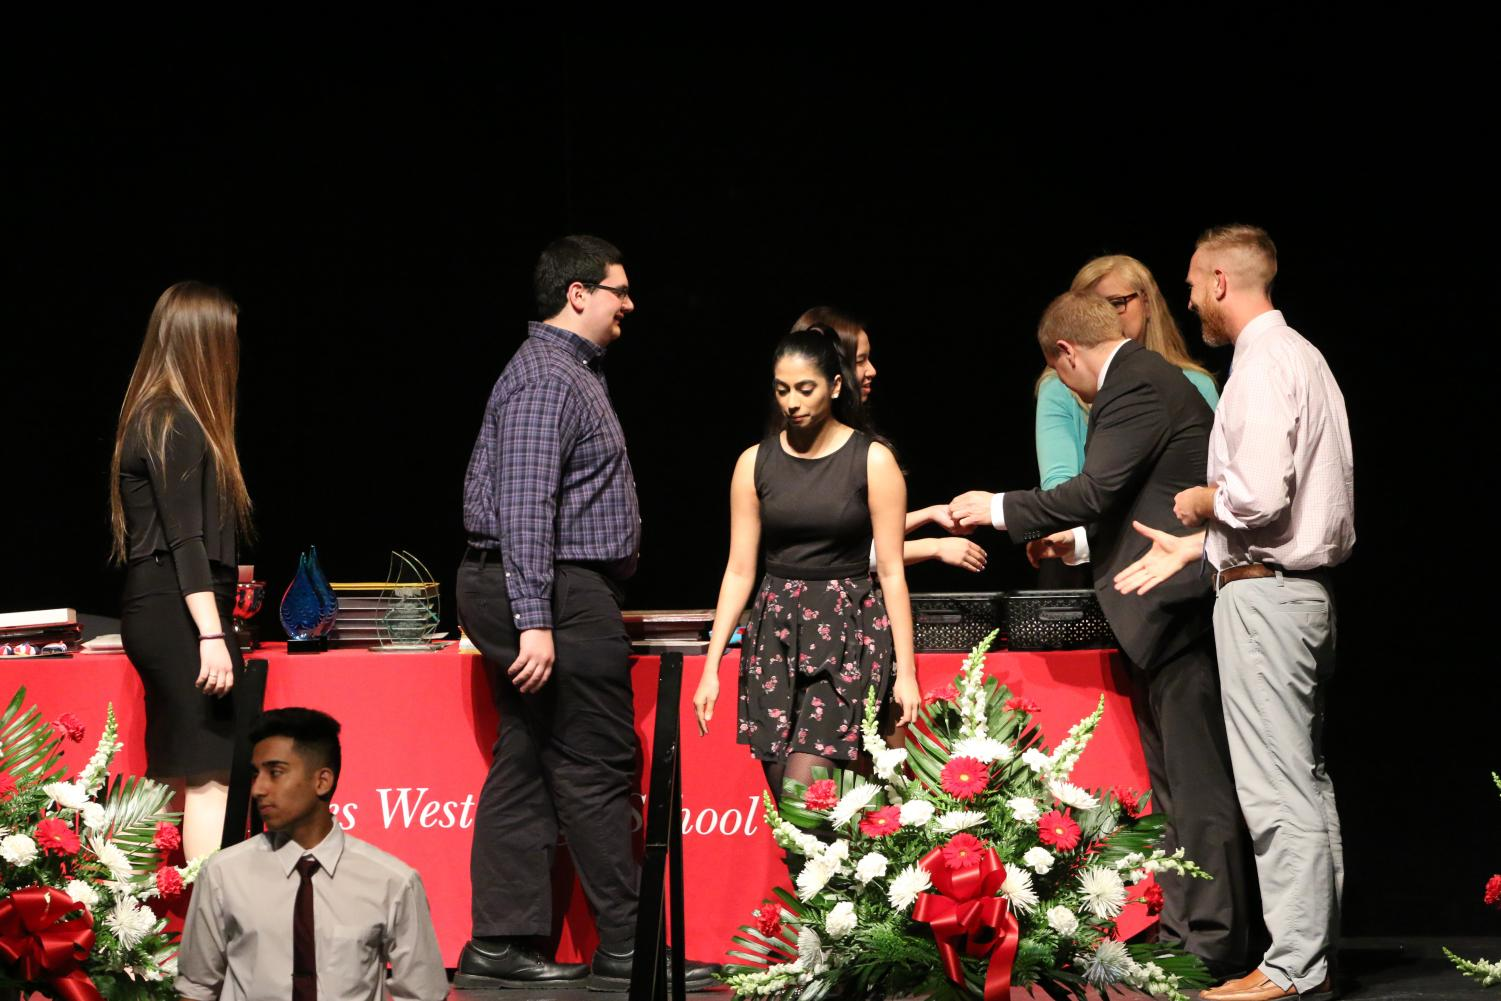 Students from 2018 lined up on stage waiting to receive their awards.